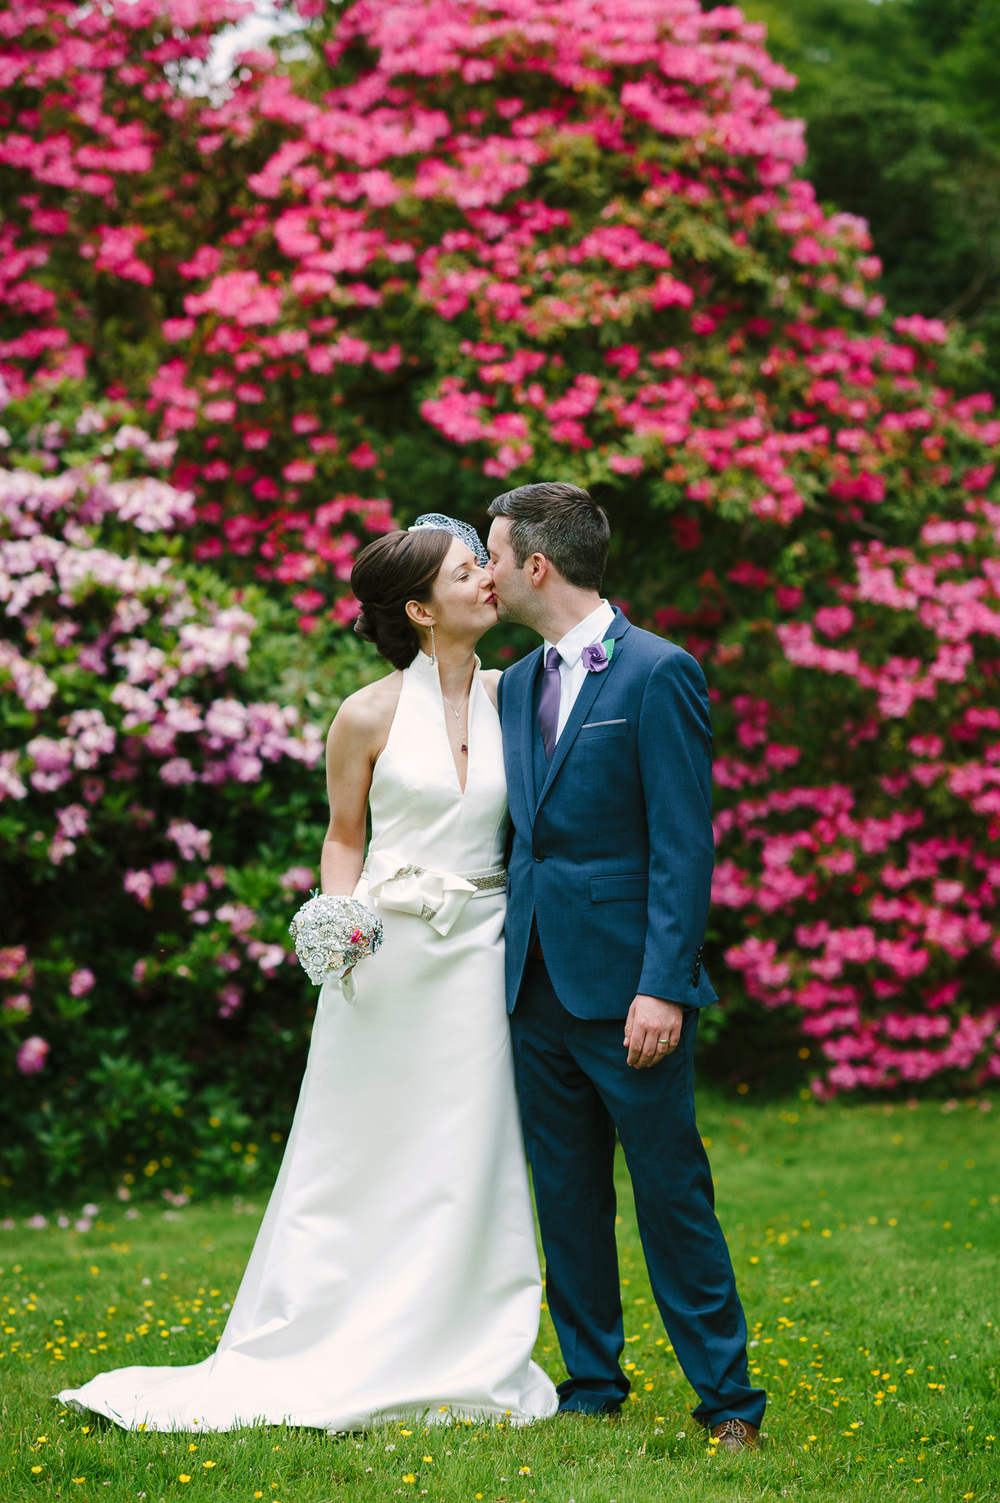 Wedding Photography Northern Ireland Rowallane Gardens Eva Conor 109.JPG